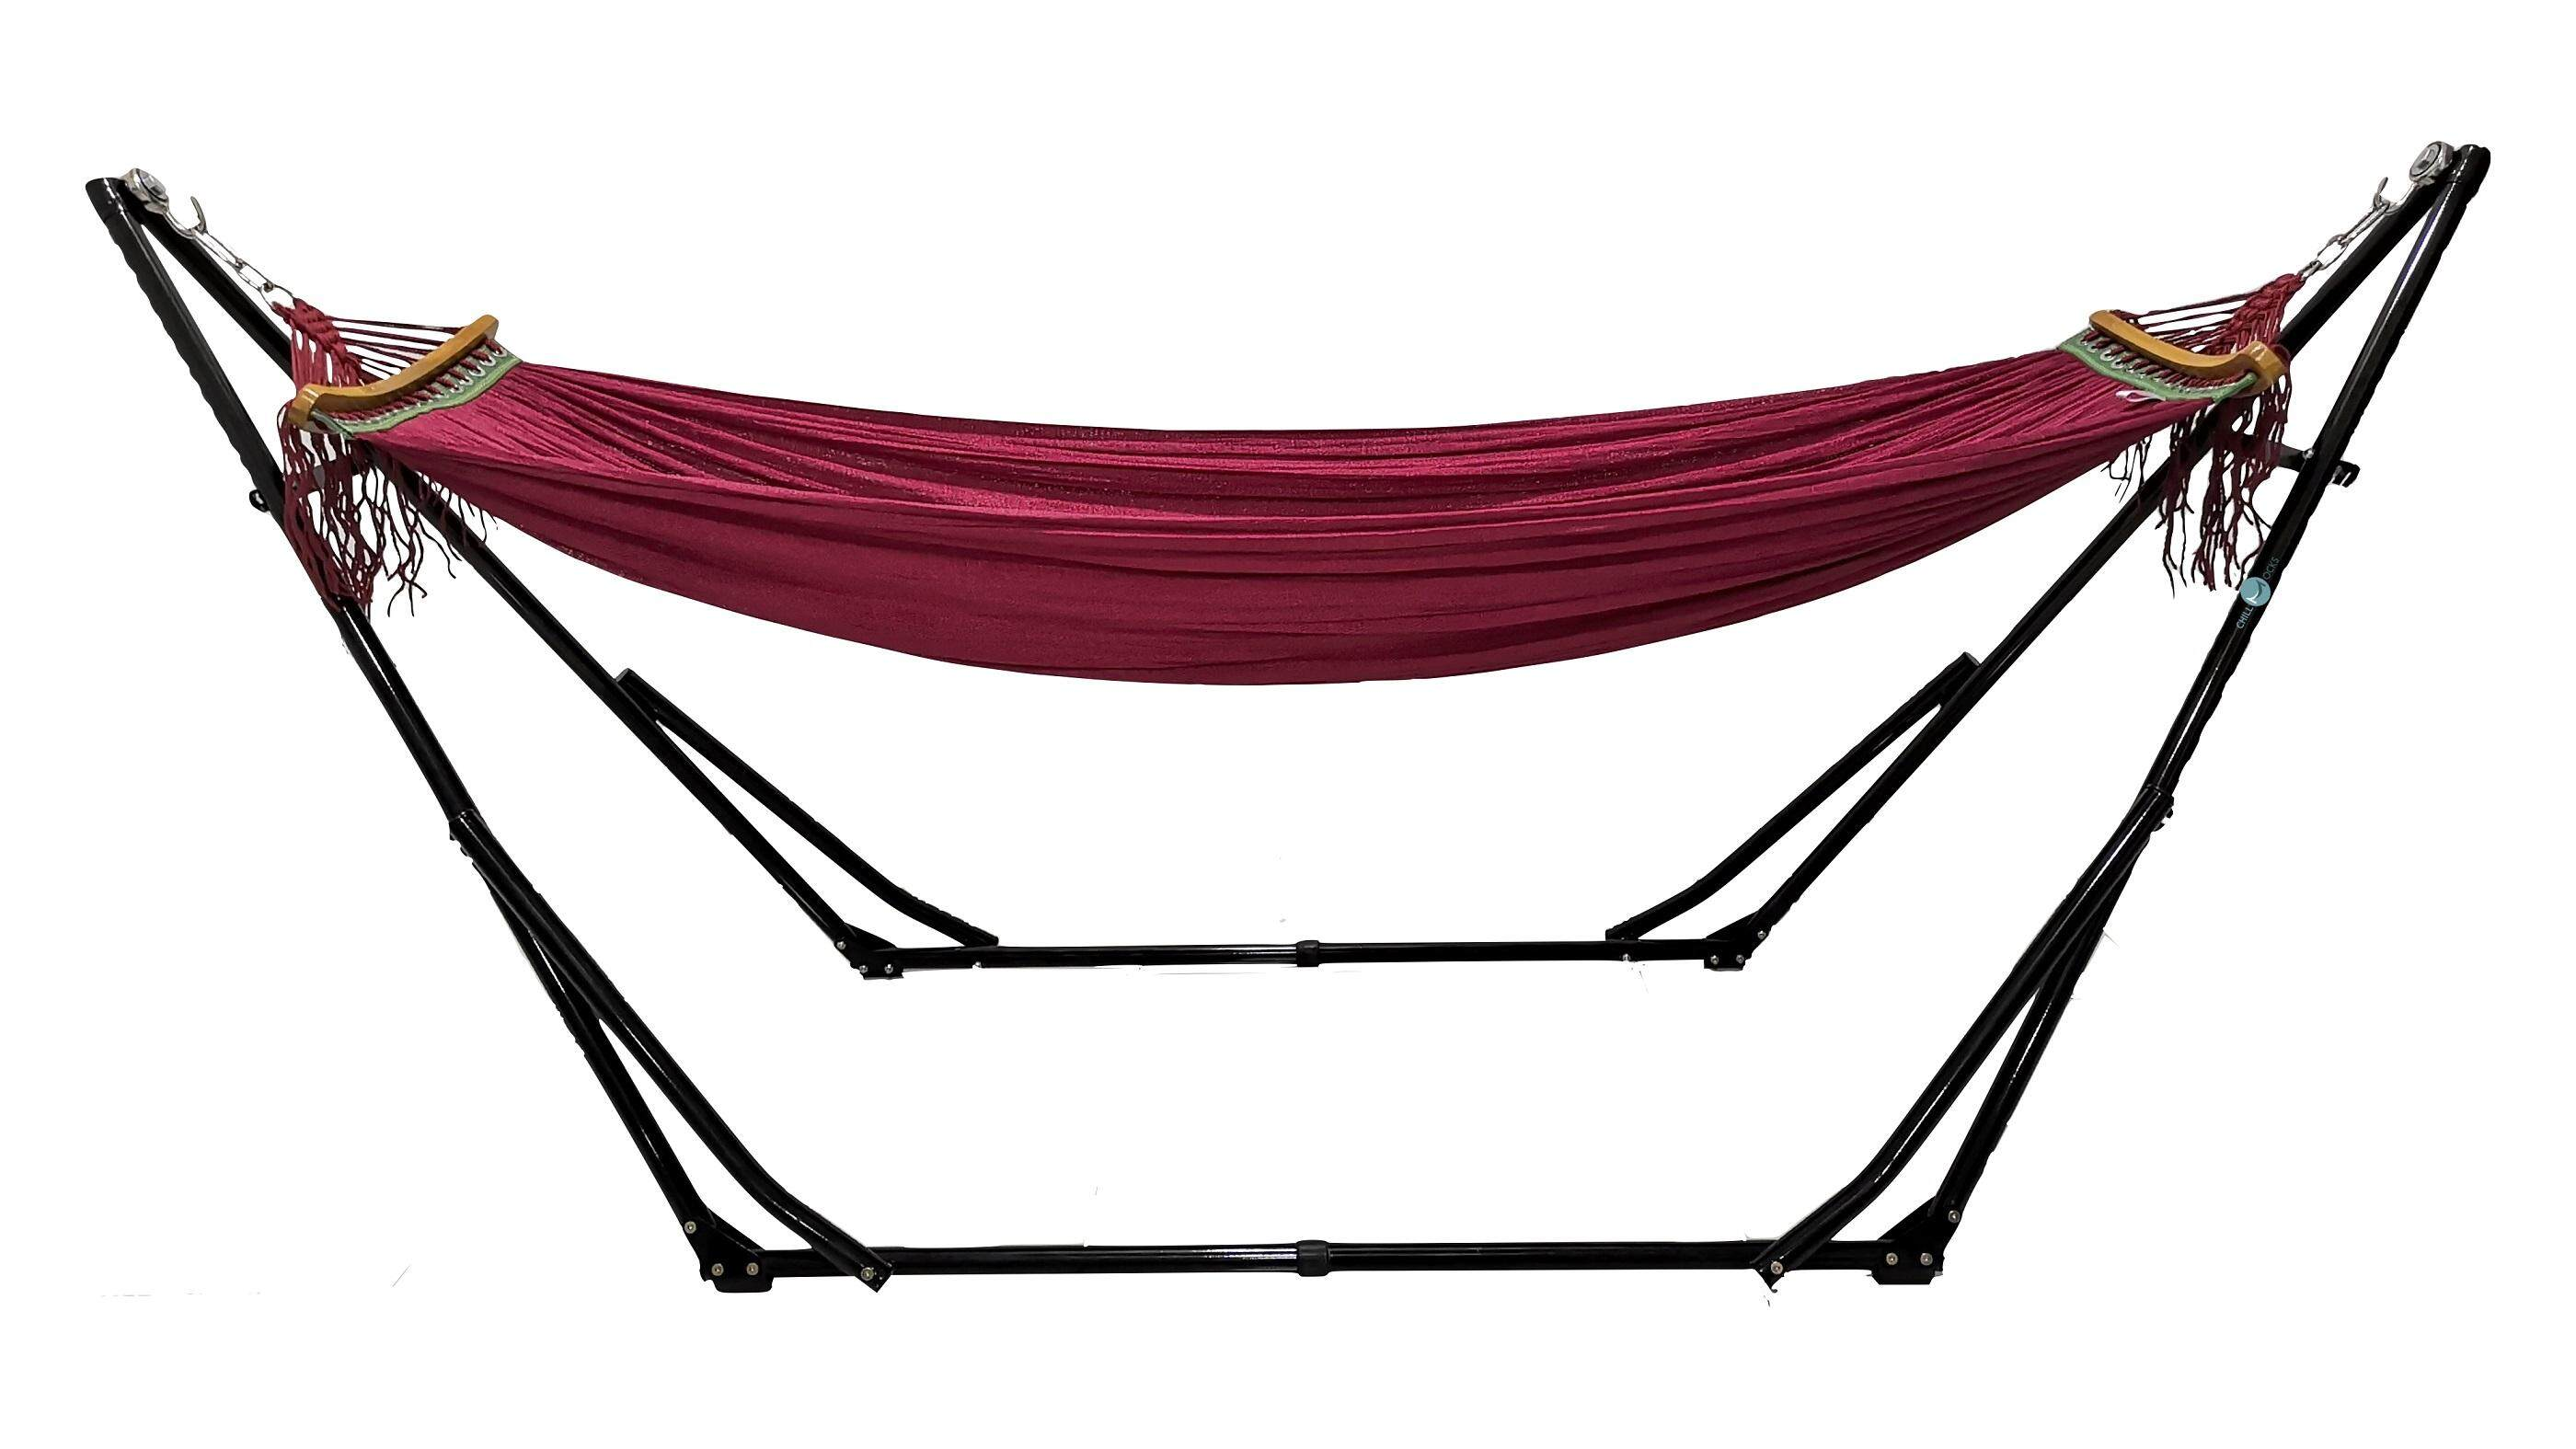 Chillmocks Portable & Foldable (indoor & Outdoor) Hammock With Stand By Awesome Trading.